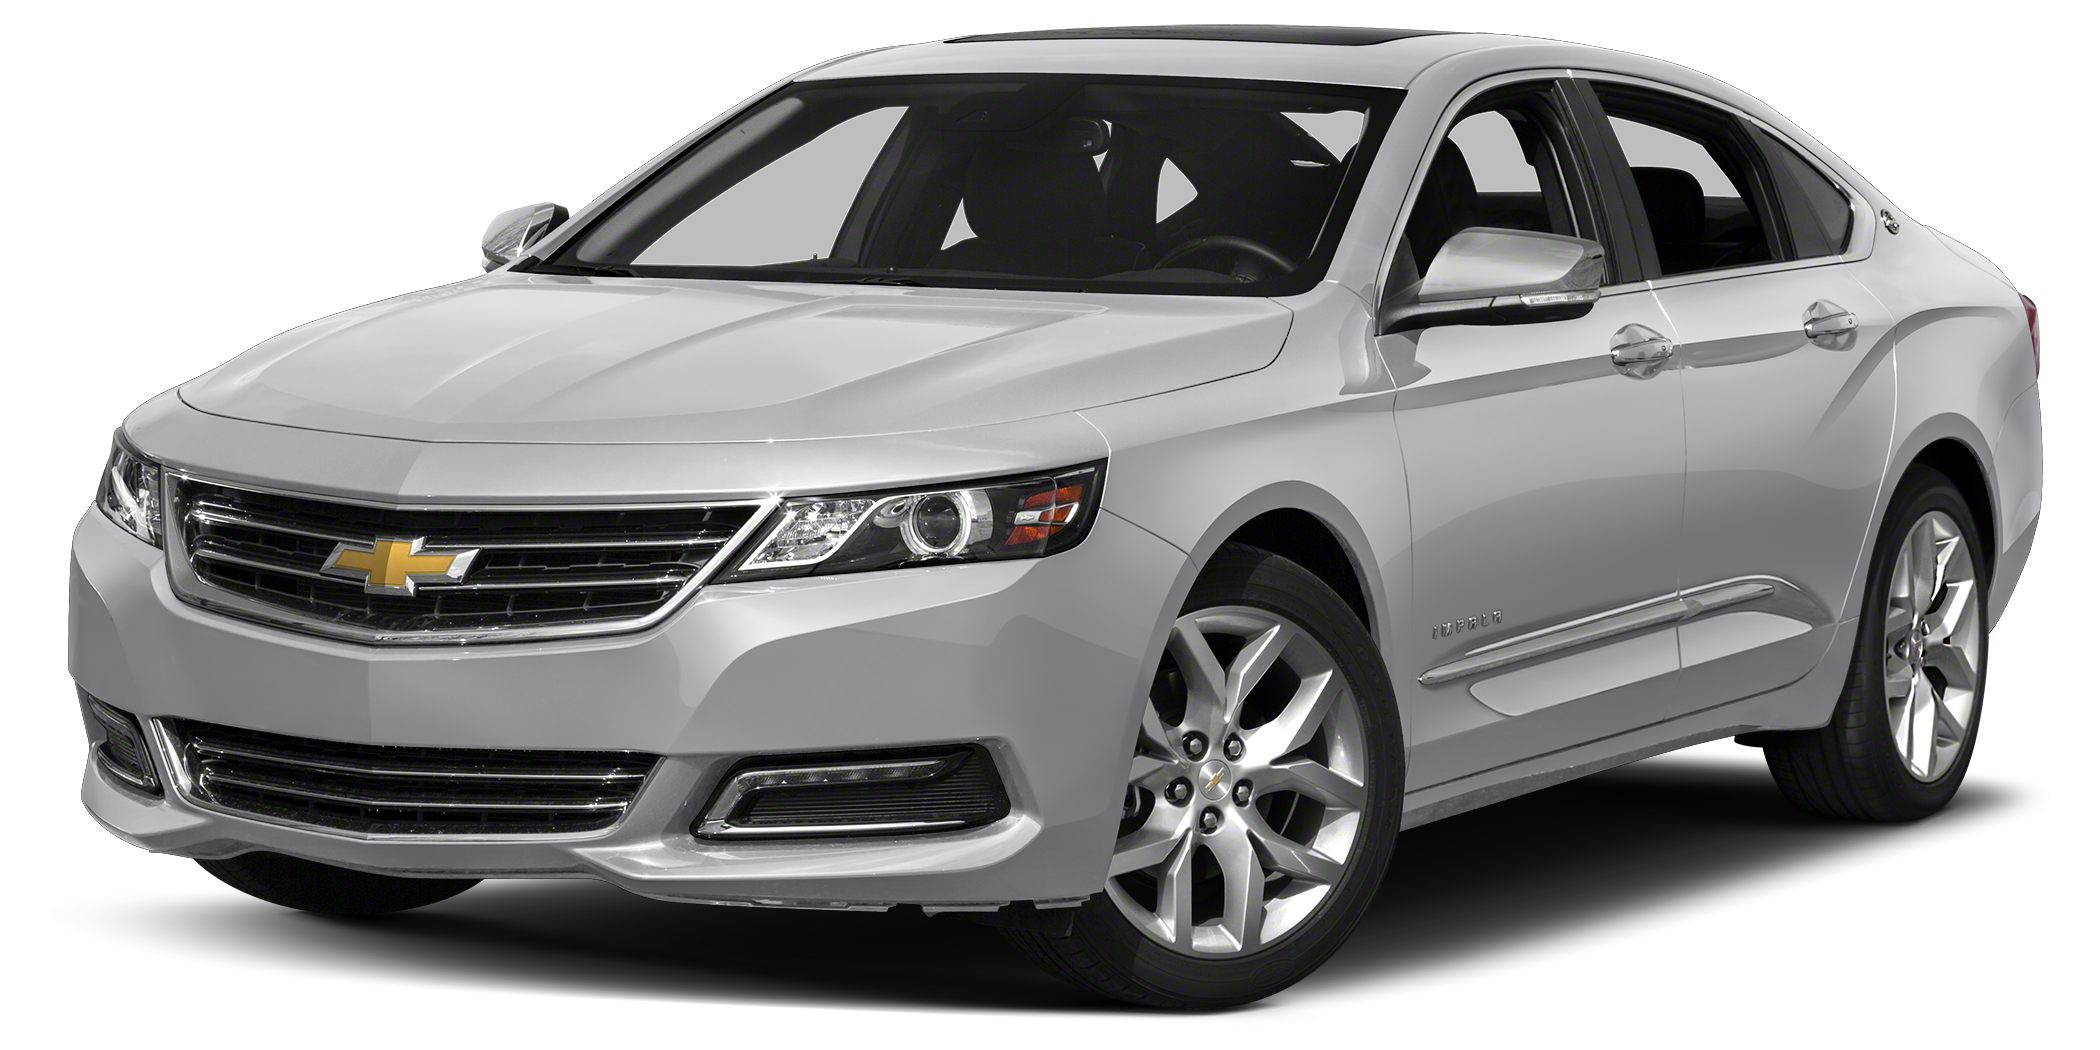 2017 Chevrolet Impala 2LZ 2017 Chevrolet Impala Premier in Silver and One Year Free Maintanence F